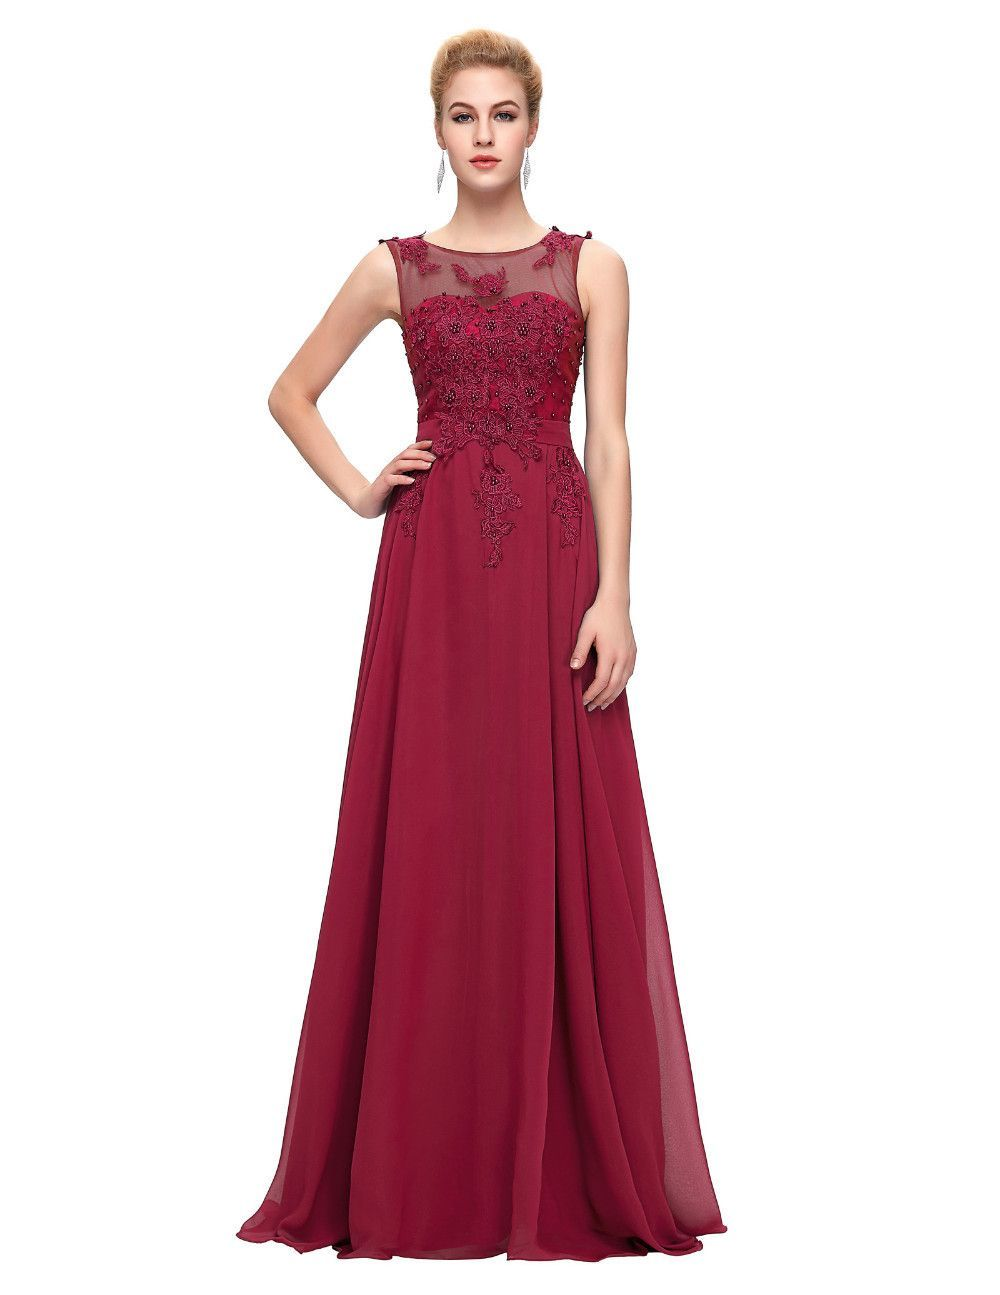 Elegant chiffon evening dresses formal evening dress at bling brides